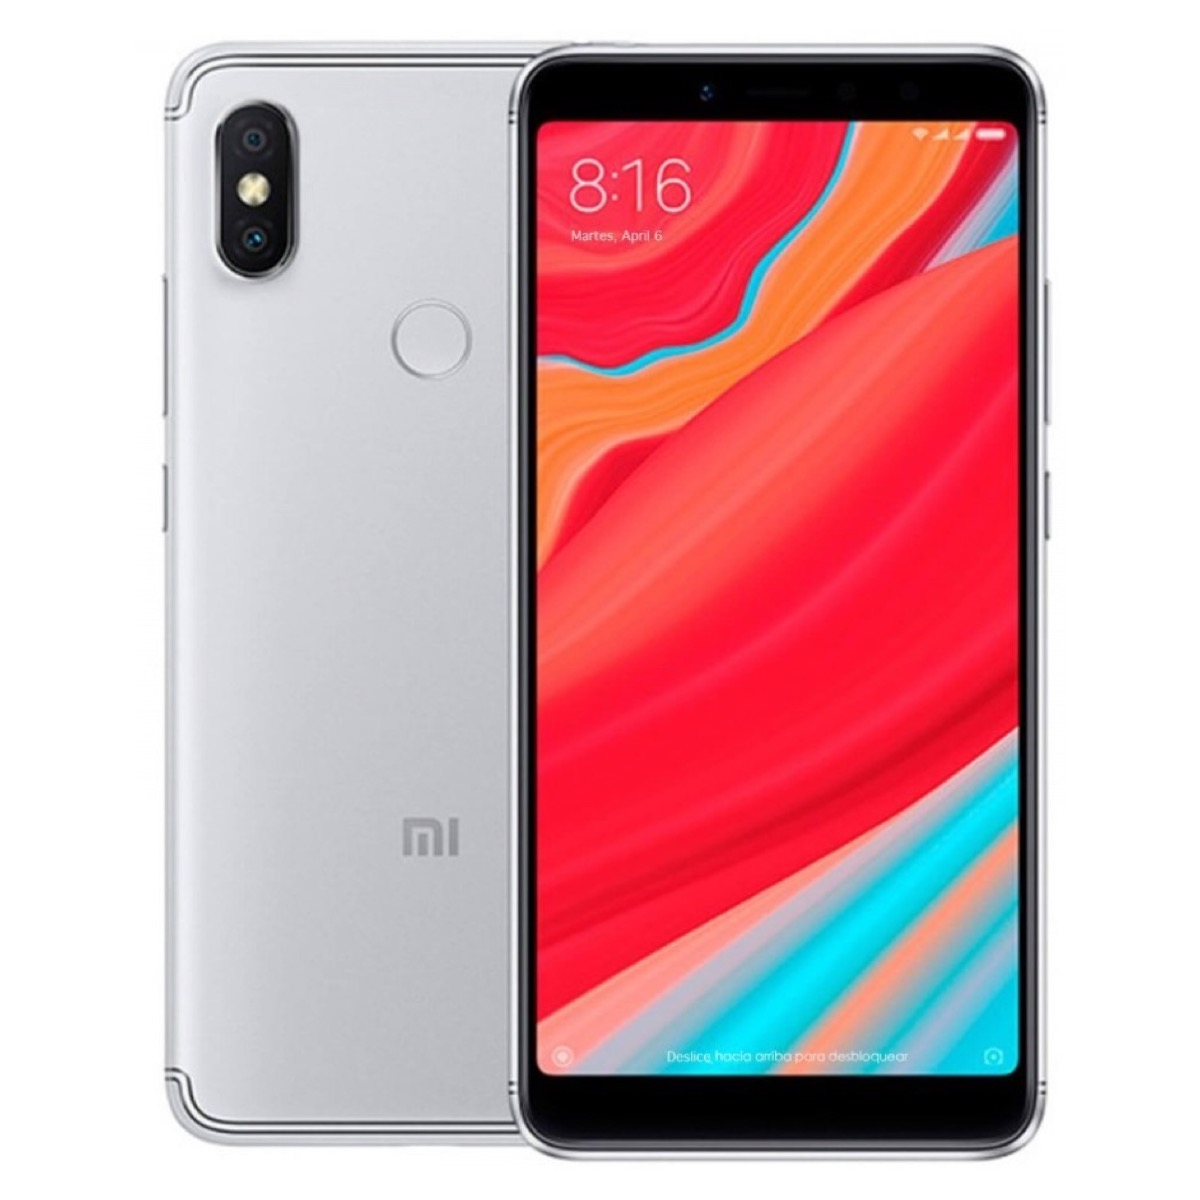 Sell Redmi S2 in Singapore